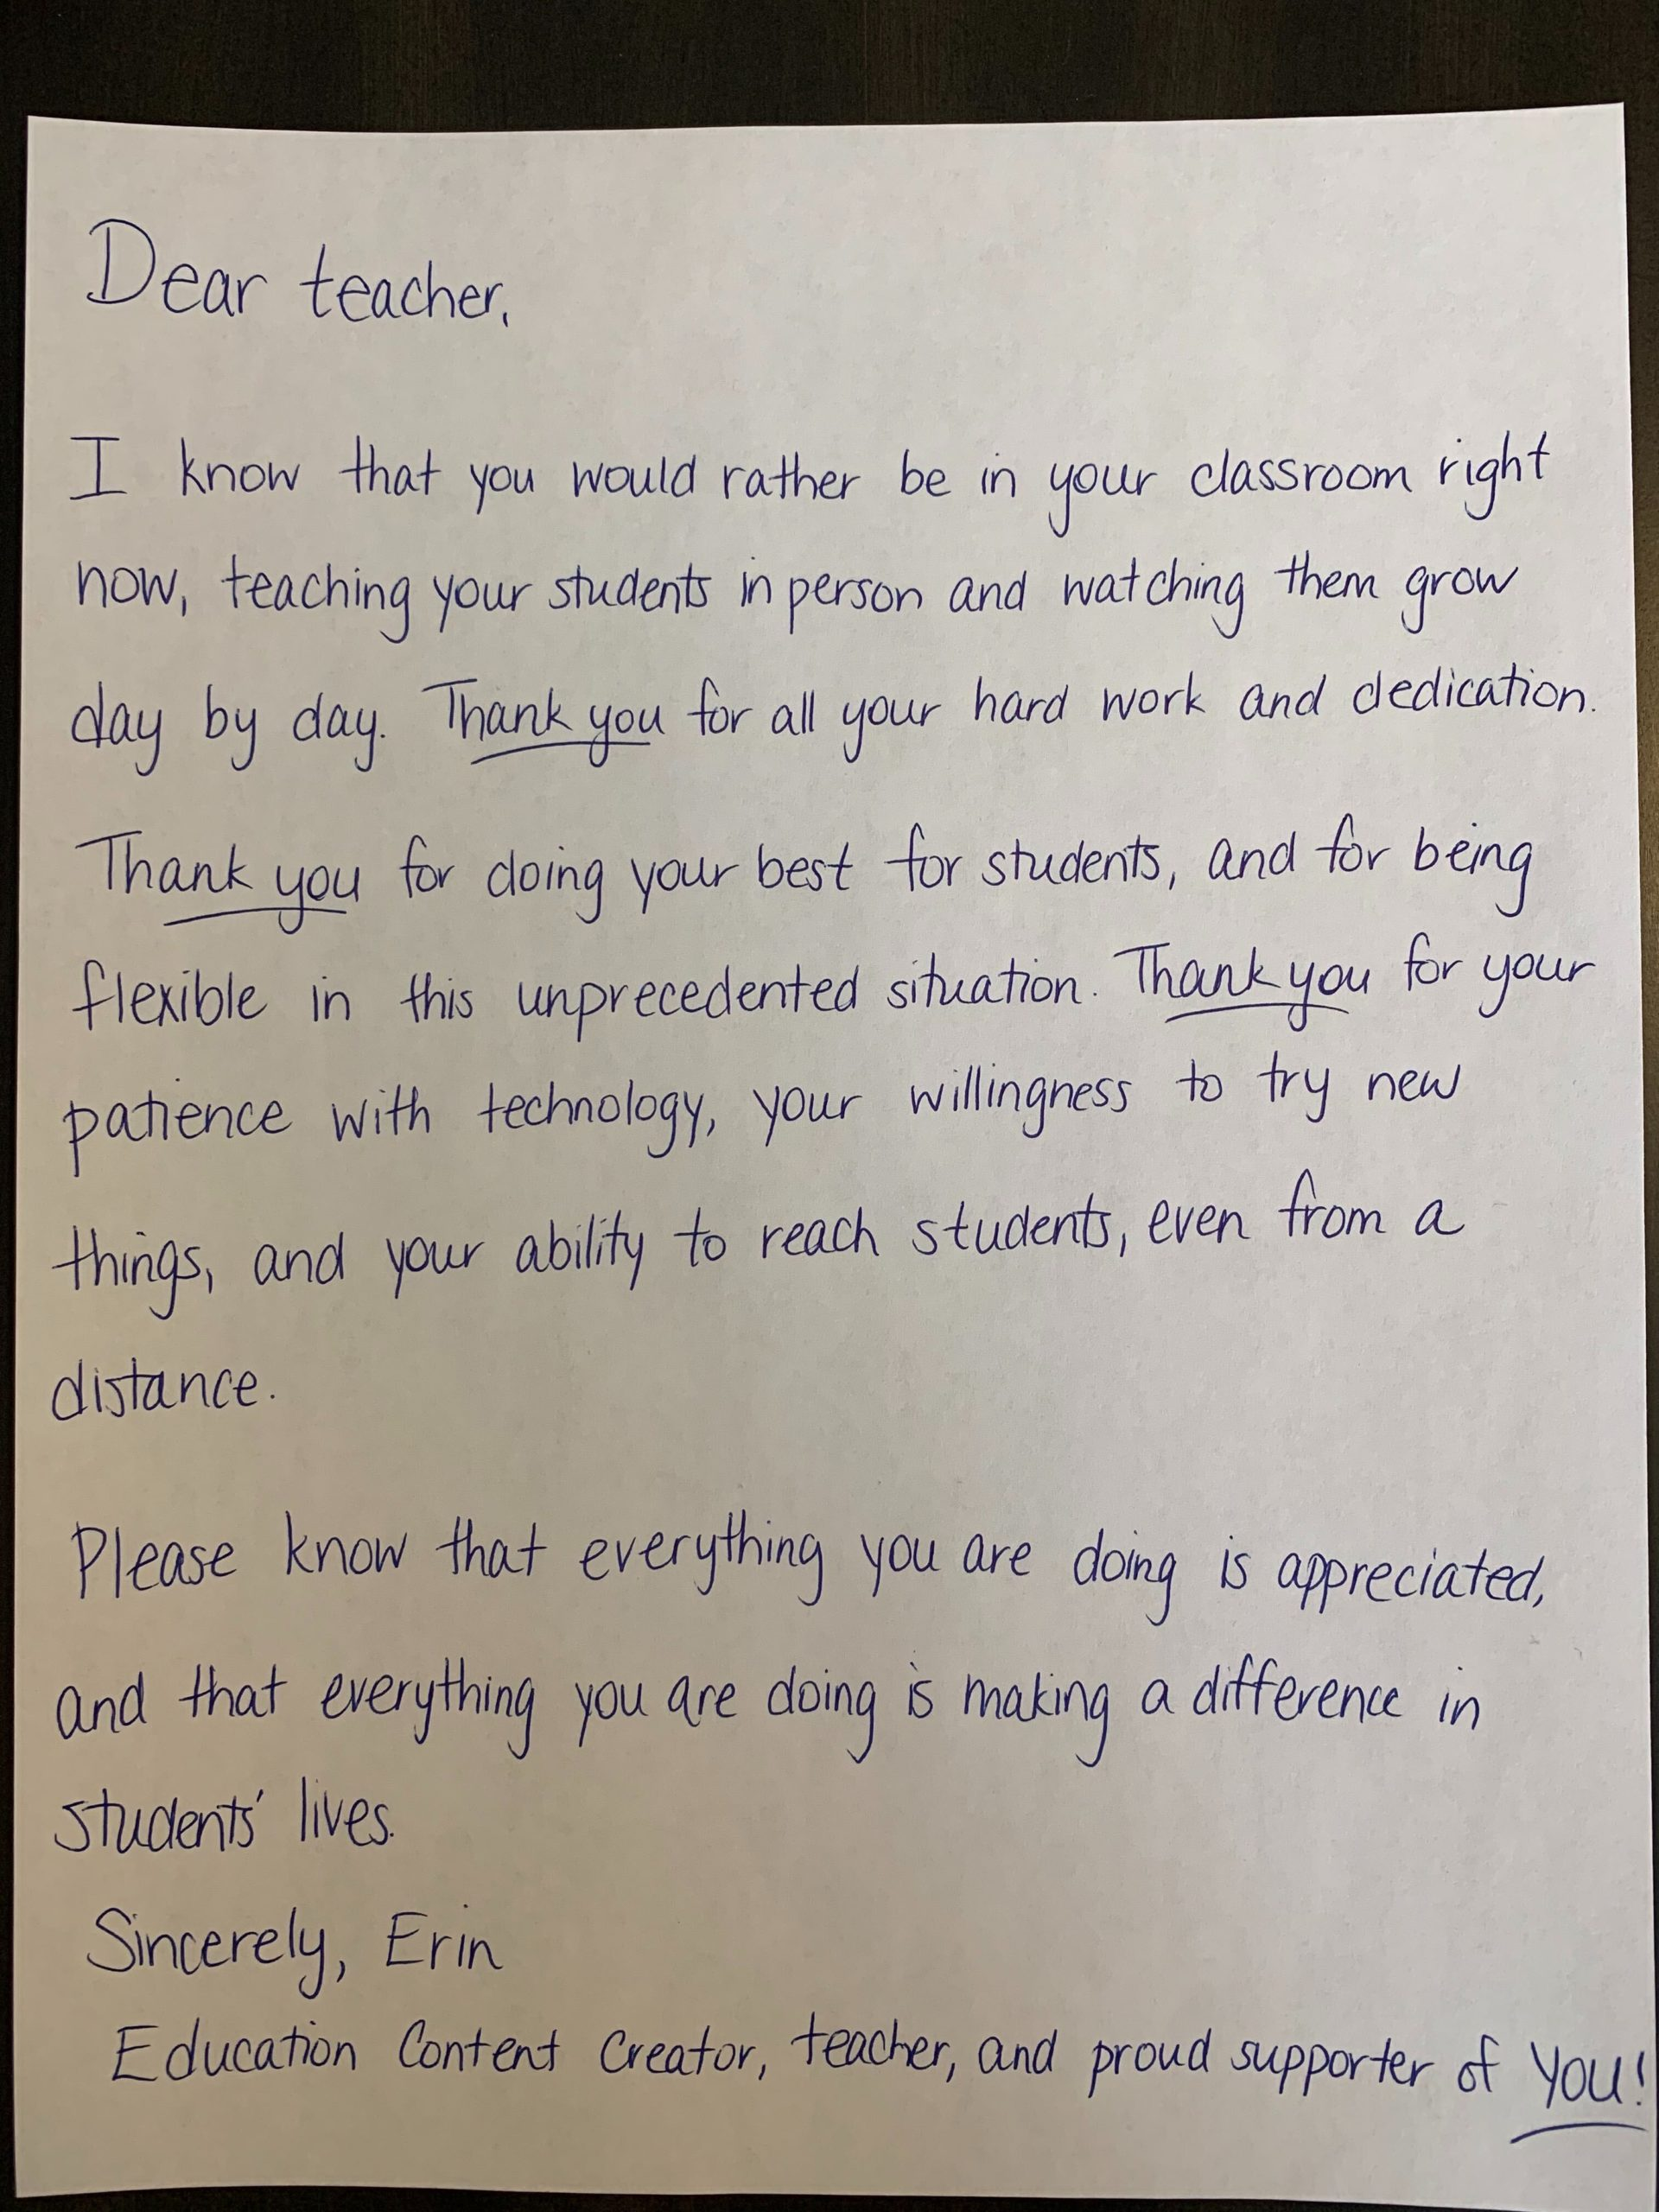 Happy Teacher Appreciation Week Letters To You From Prodigy Prodigy Education